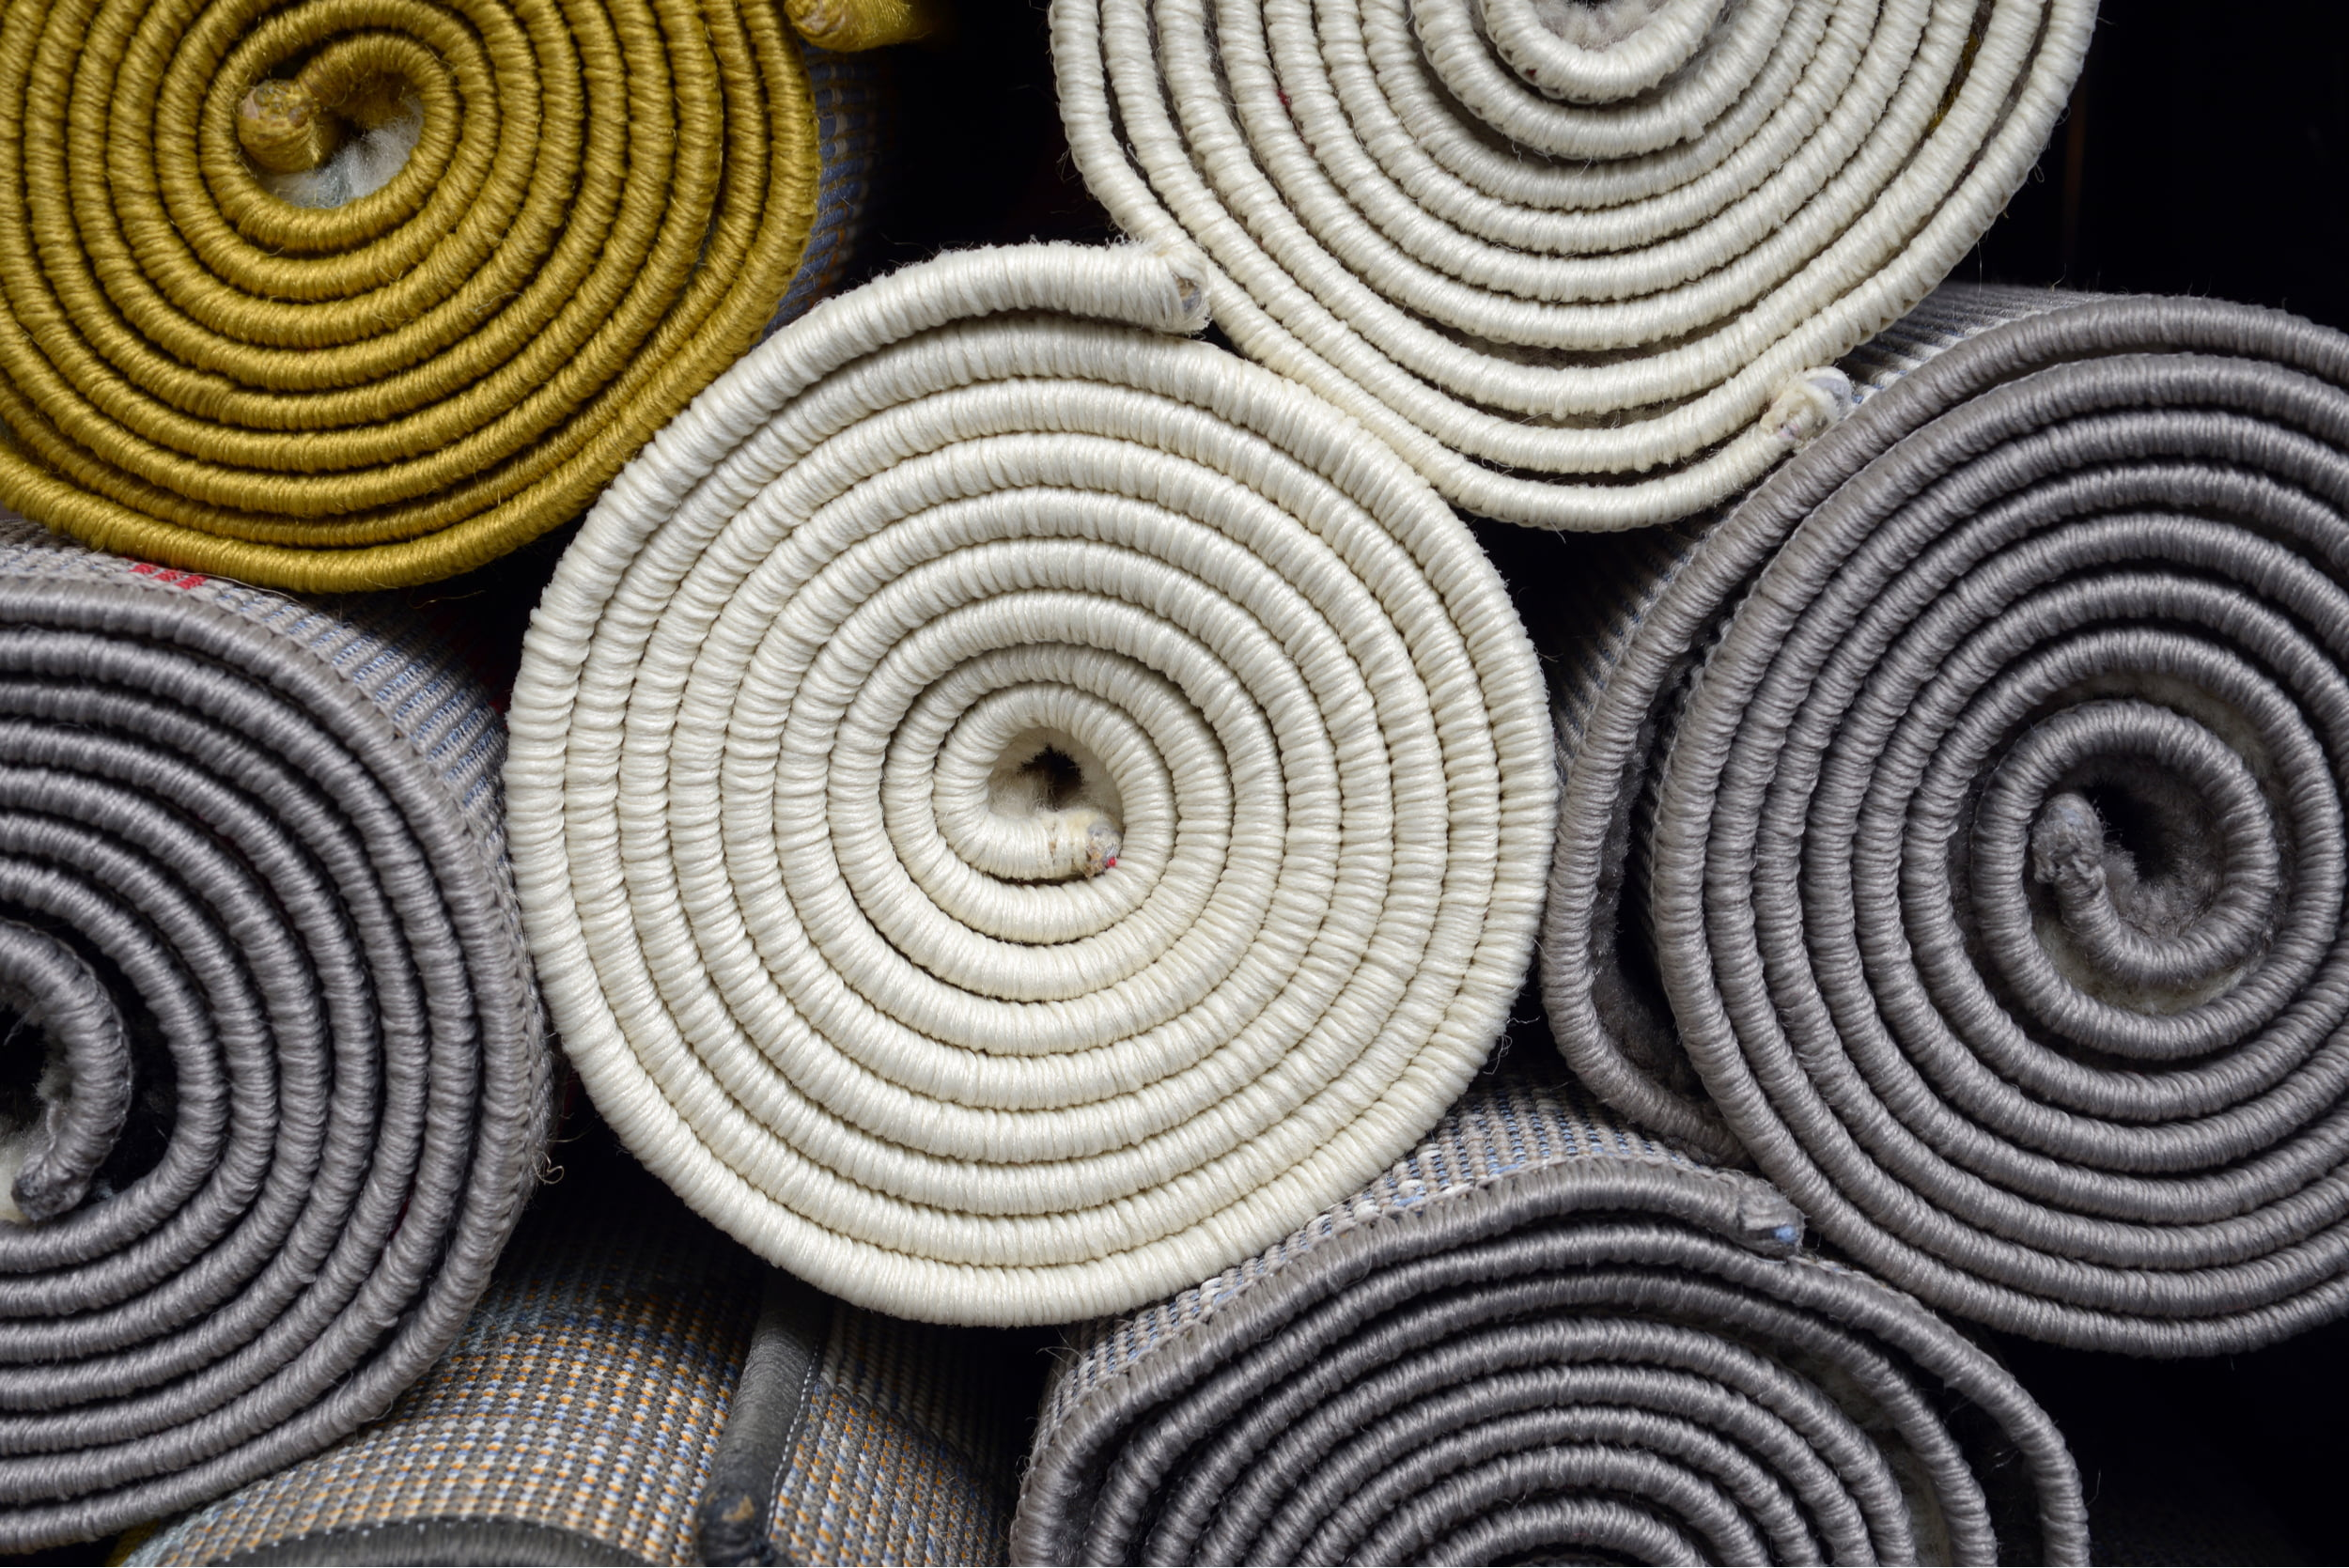 Seven rolled up rugs stacked on each other, K & M Carpets & Interiors, Shaftesbury Mews, Bath, Whiteway, Twerton, Bear Flat, The Oval, Southdown